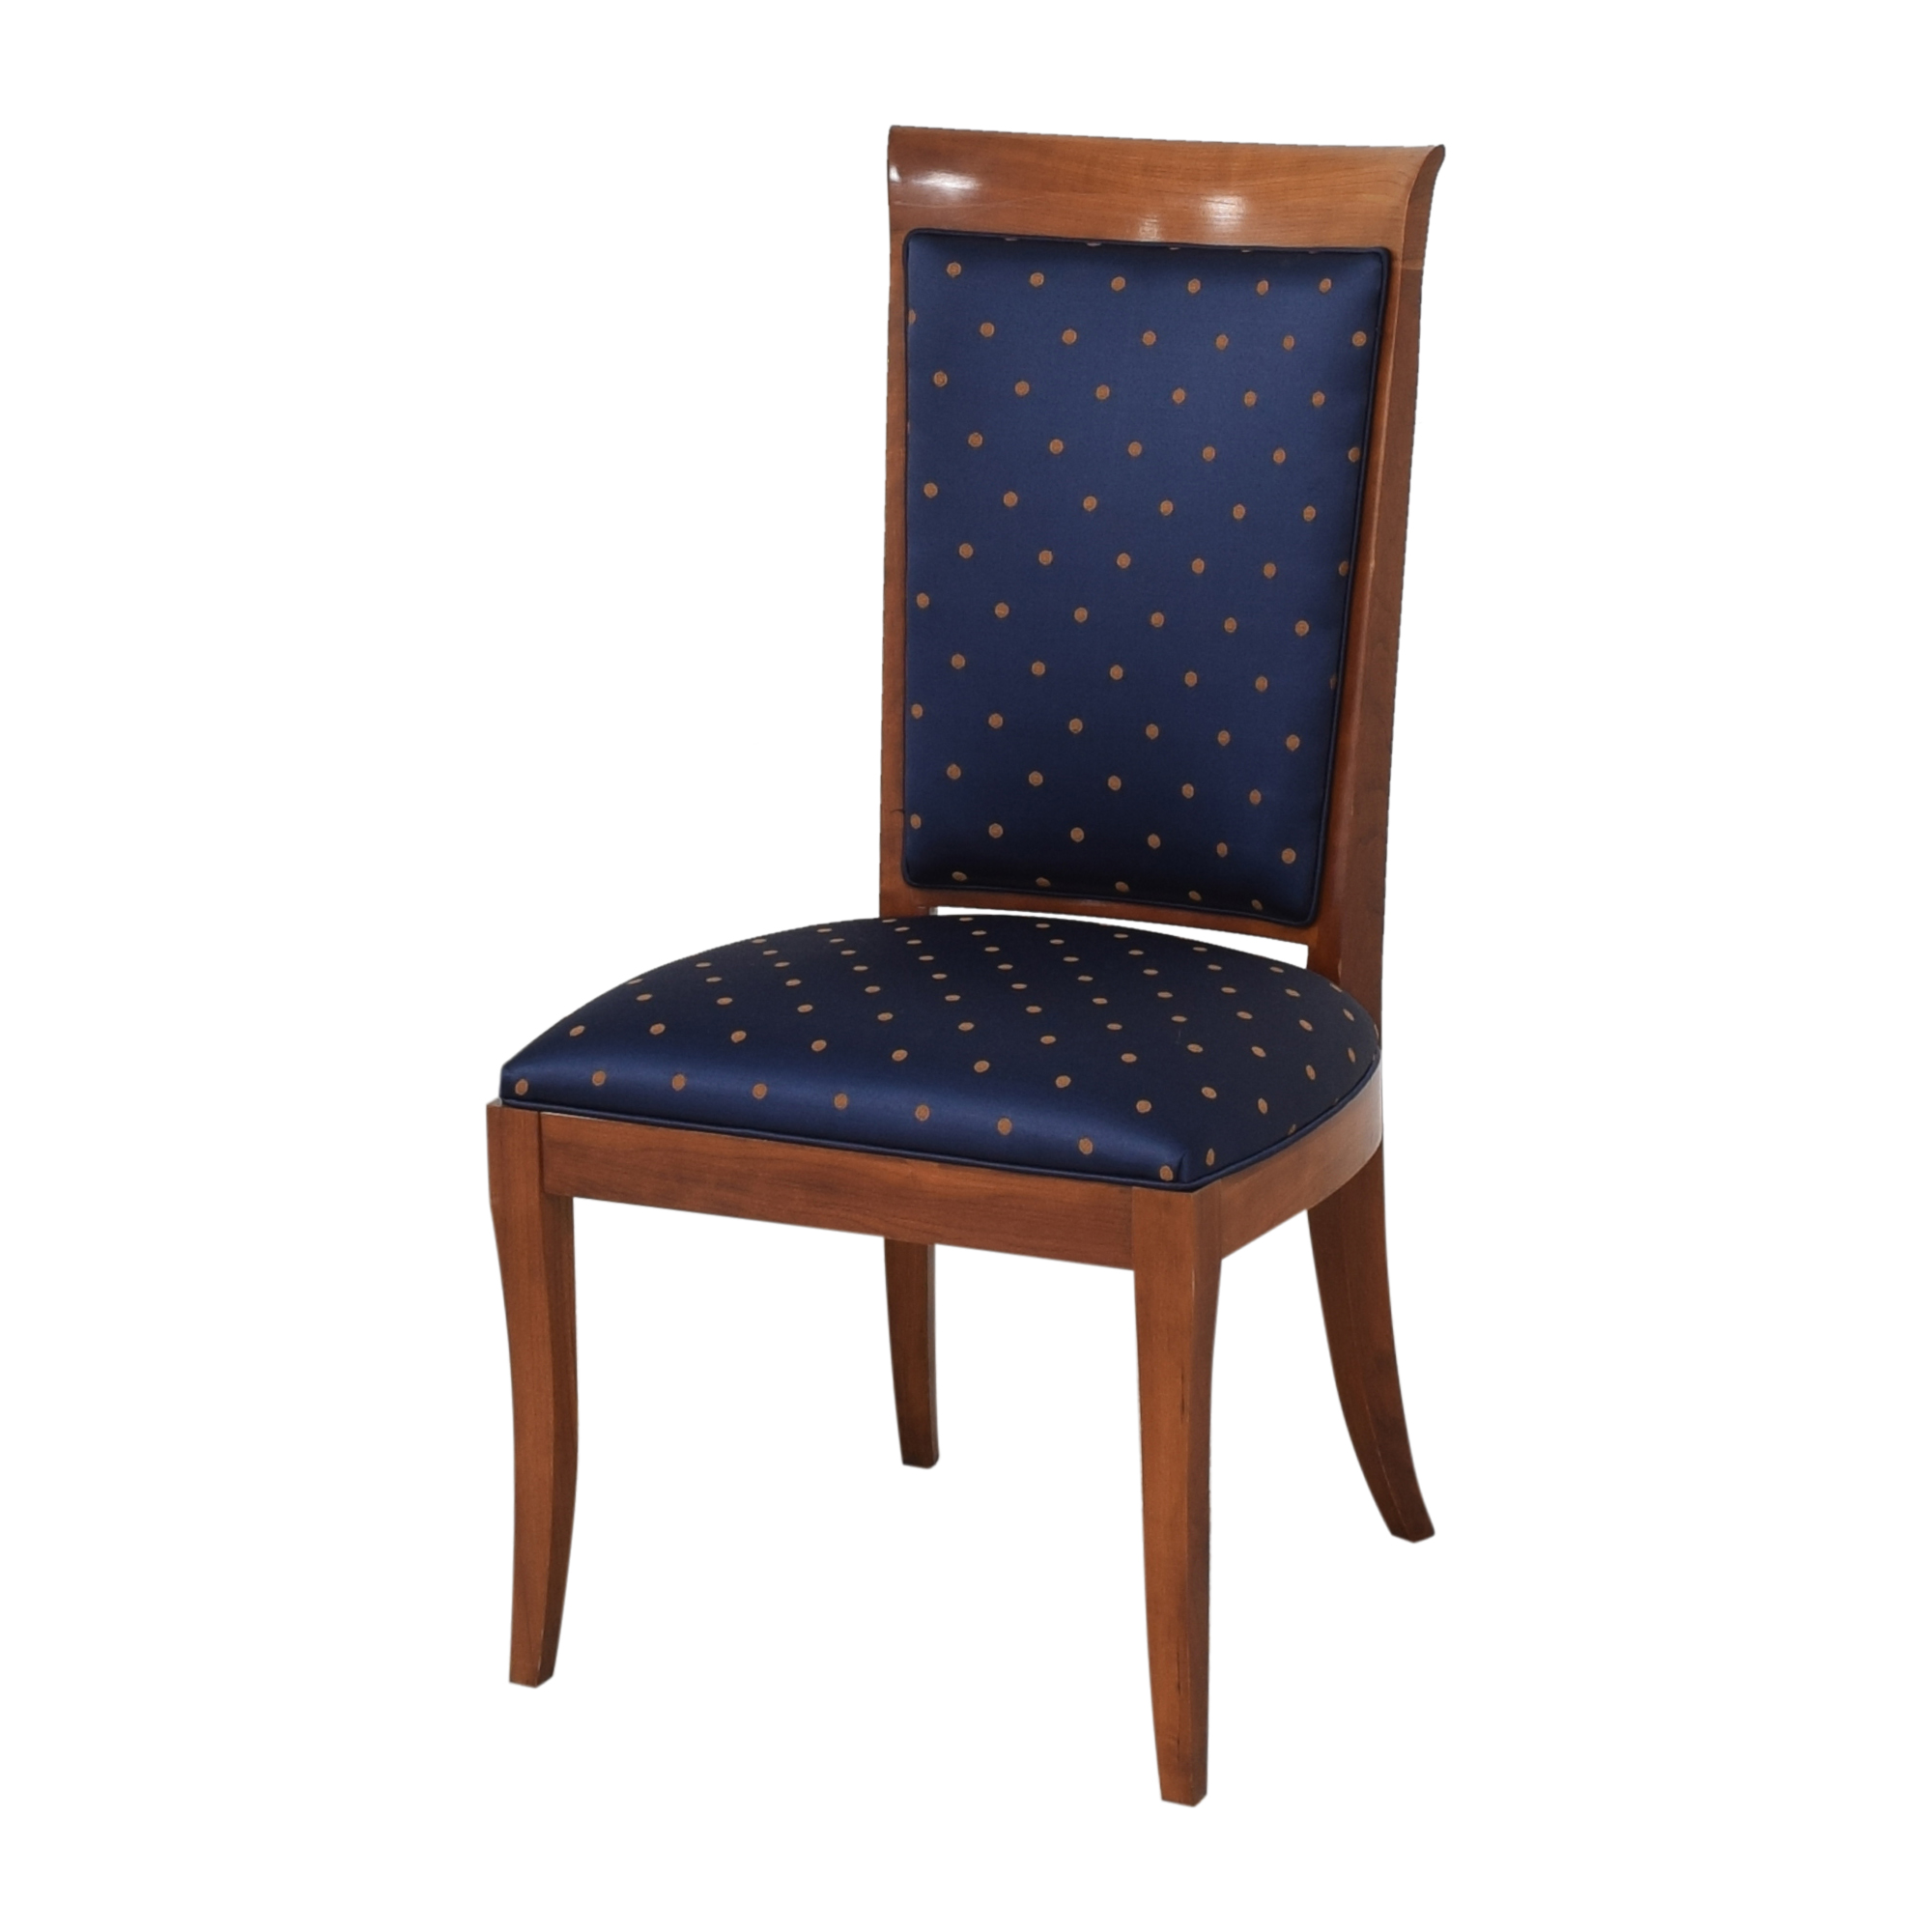 Ethan Allen Ethan Allen Medallion Collection Dining Side Chairs